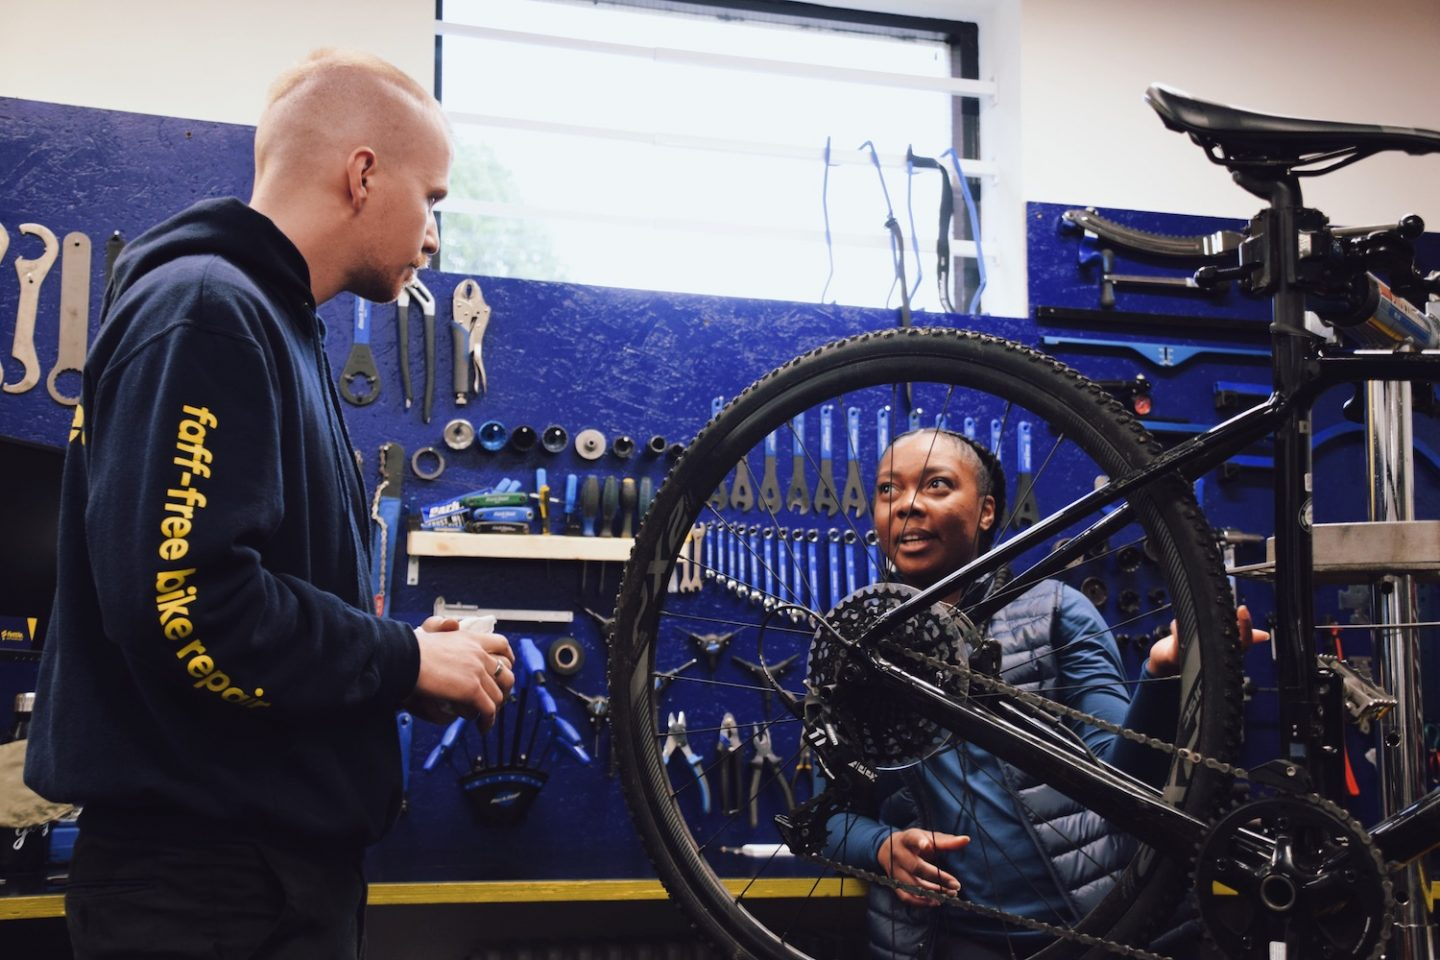 5 Step Bike Prep with fettle. Step Two: Tyre Check